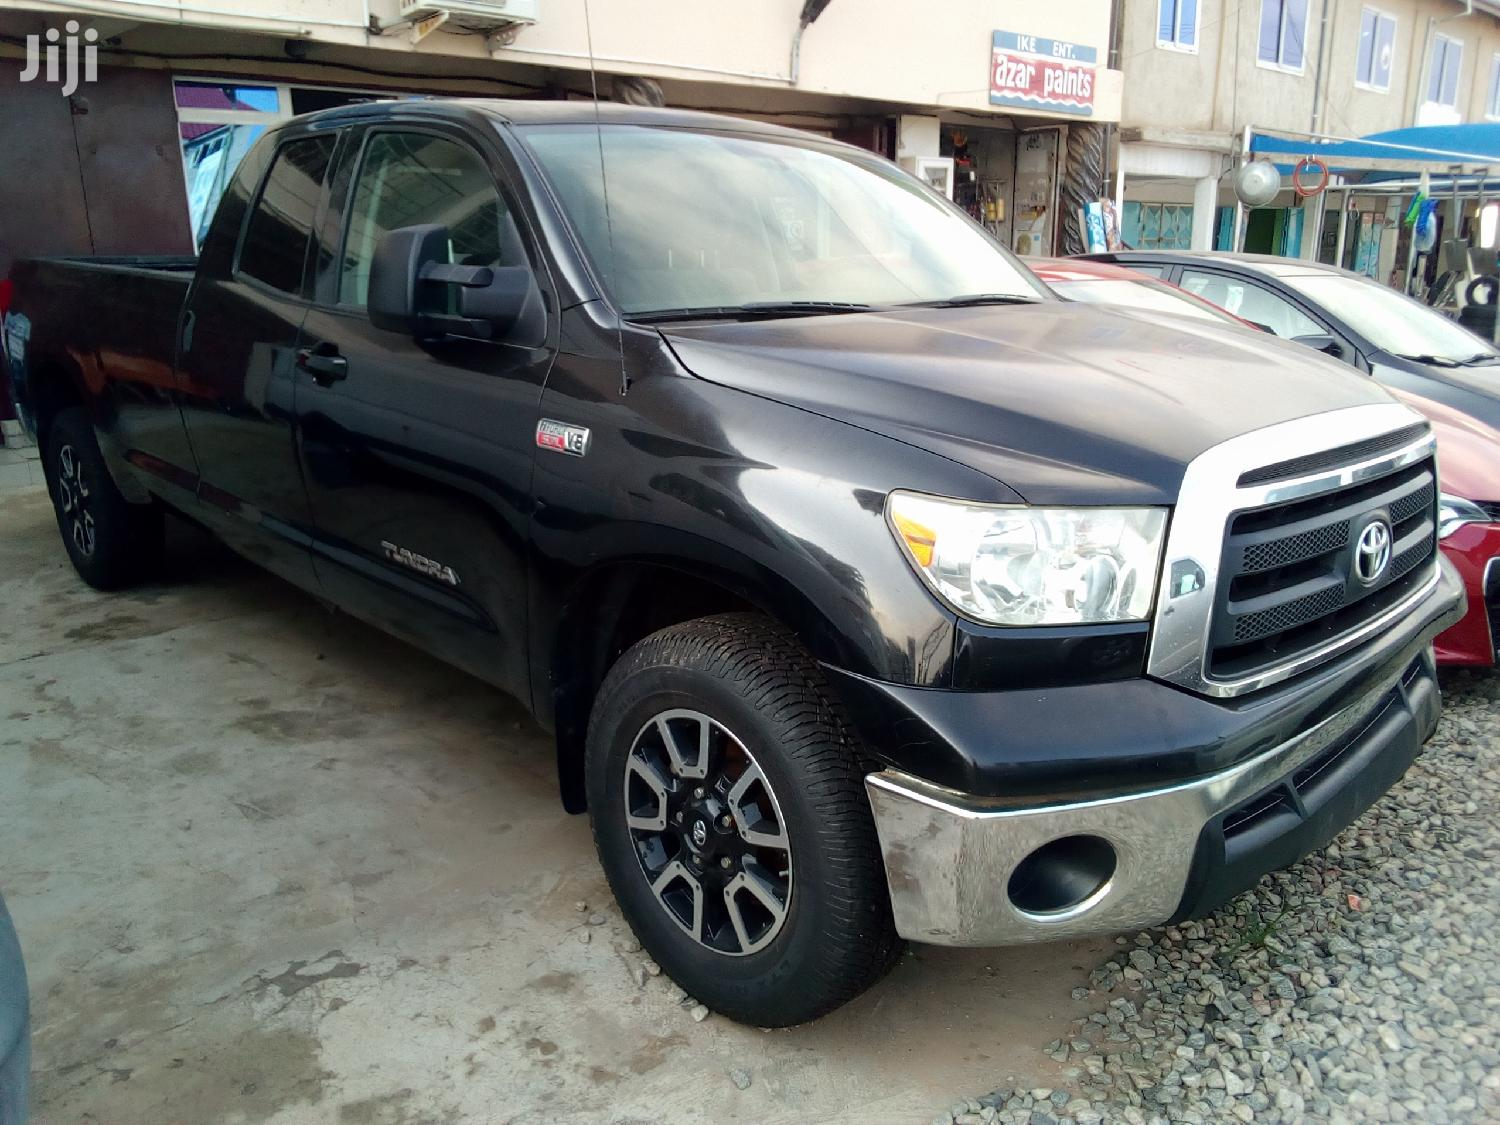 Toyota Tundra 2013 Double Cab 4x4 5.7L V8 Black | Cars for sale in Odorkor, Greater Accra, Ghana